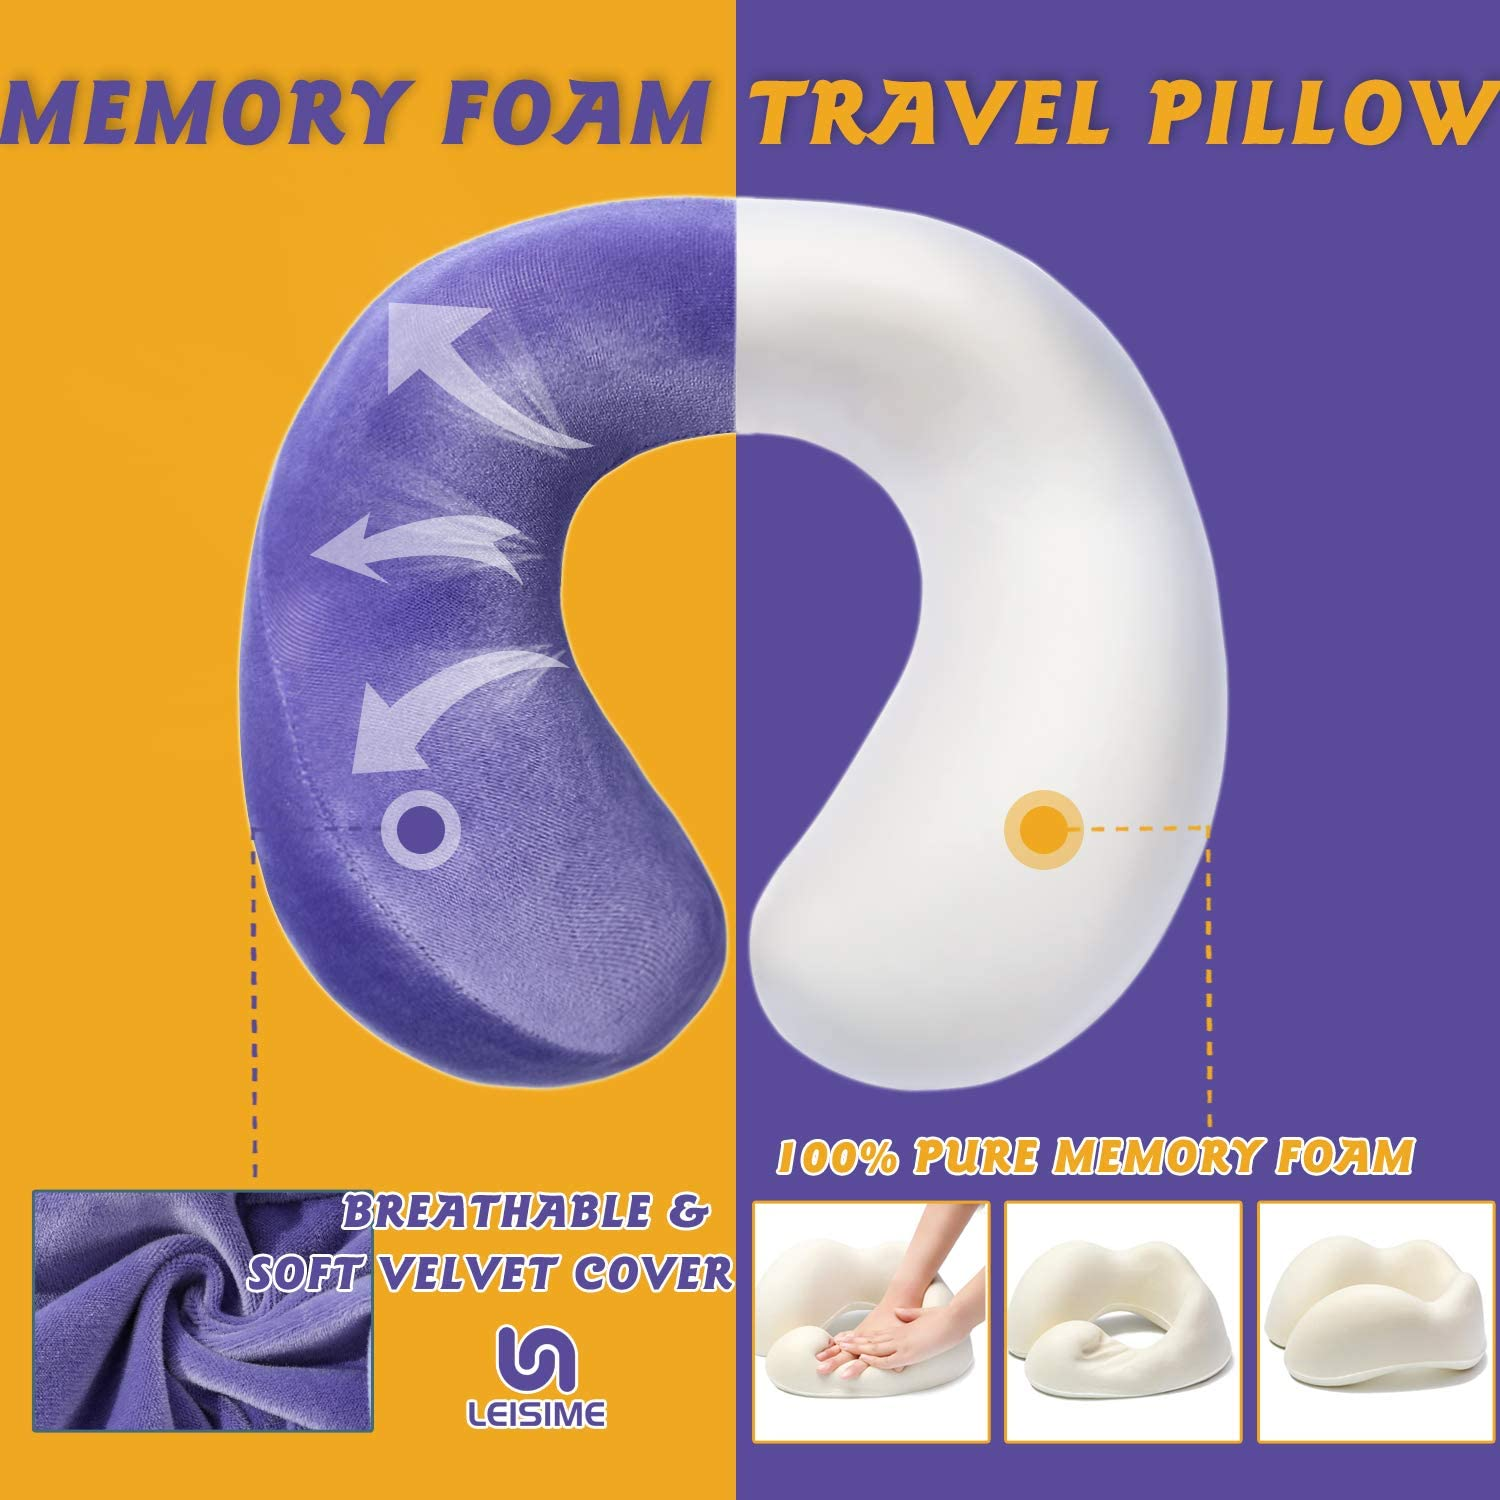 Machine Washable Airplane Pillow Kit with 3D Sleep Mask Comfortable /& Breathable Cover Earplugs LEISIME Travel Pillow Memory Foam Neck Pillow Support and Luxury Bag